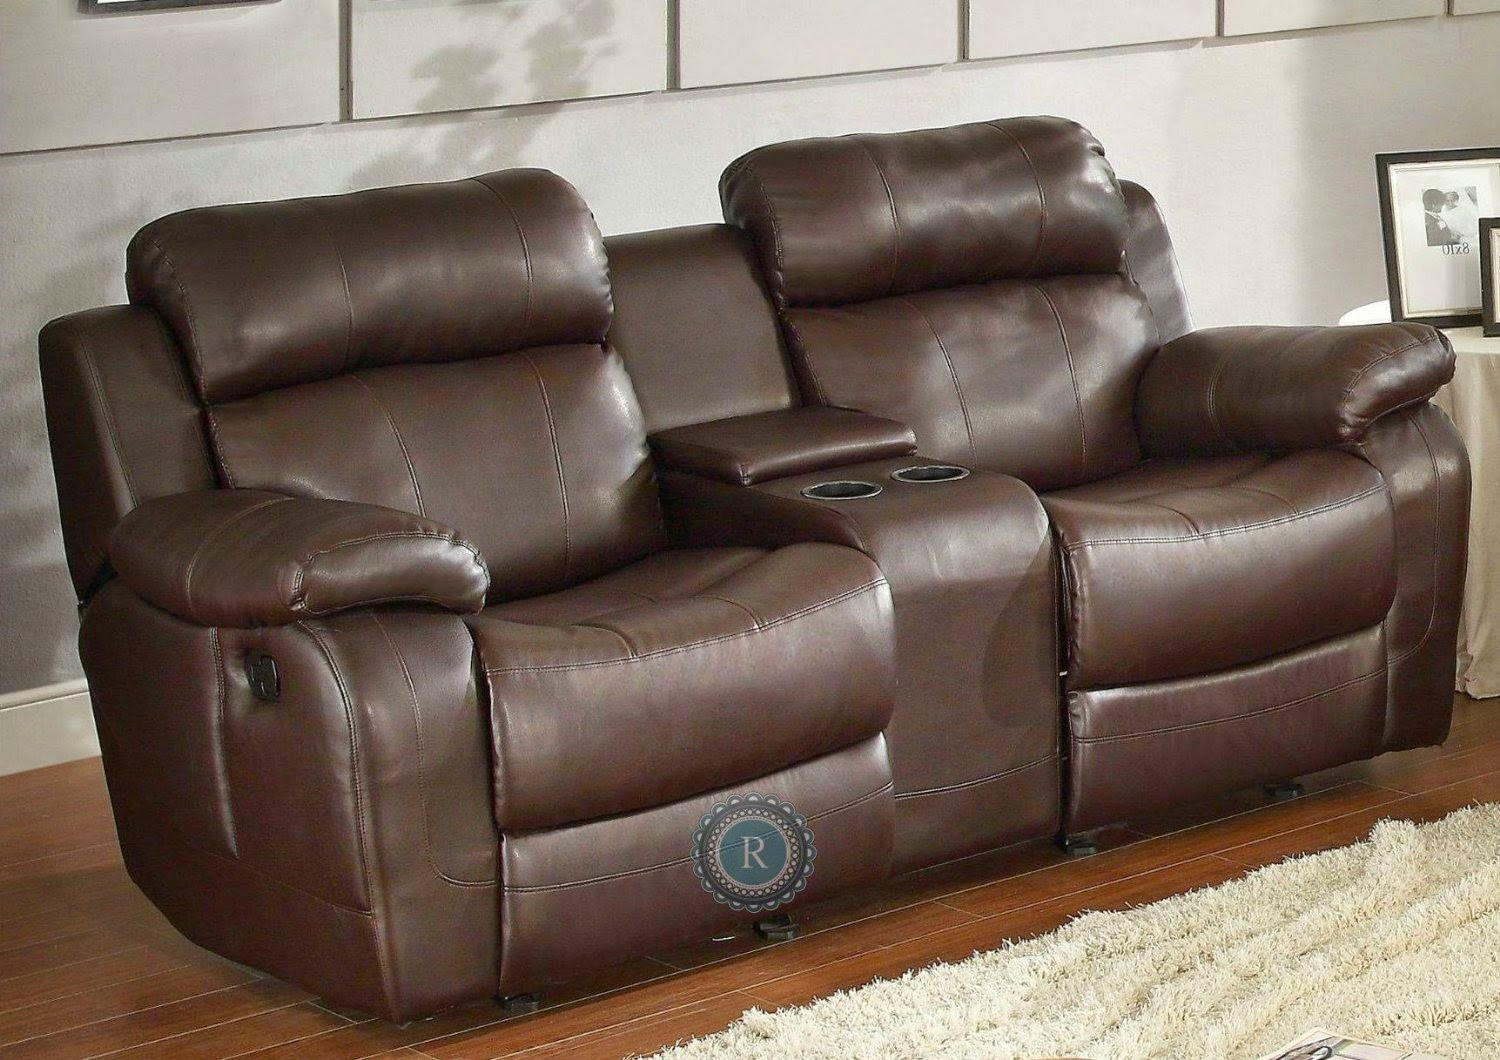 3 Seat Leather Recliner Sofa Covers Sofas Castle Boulevard Nottingham Reclining With Center Console Homelegance Marille ...